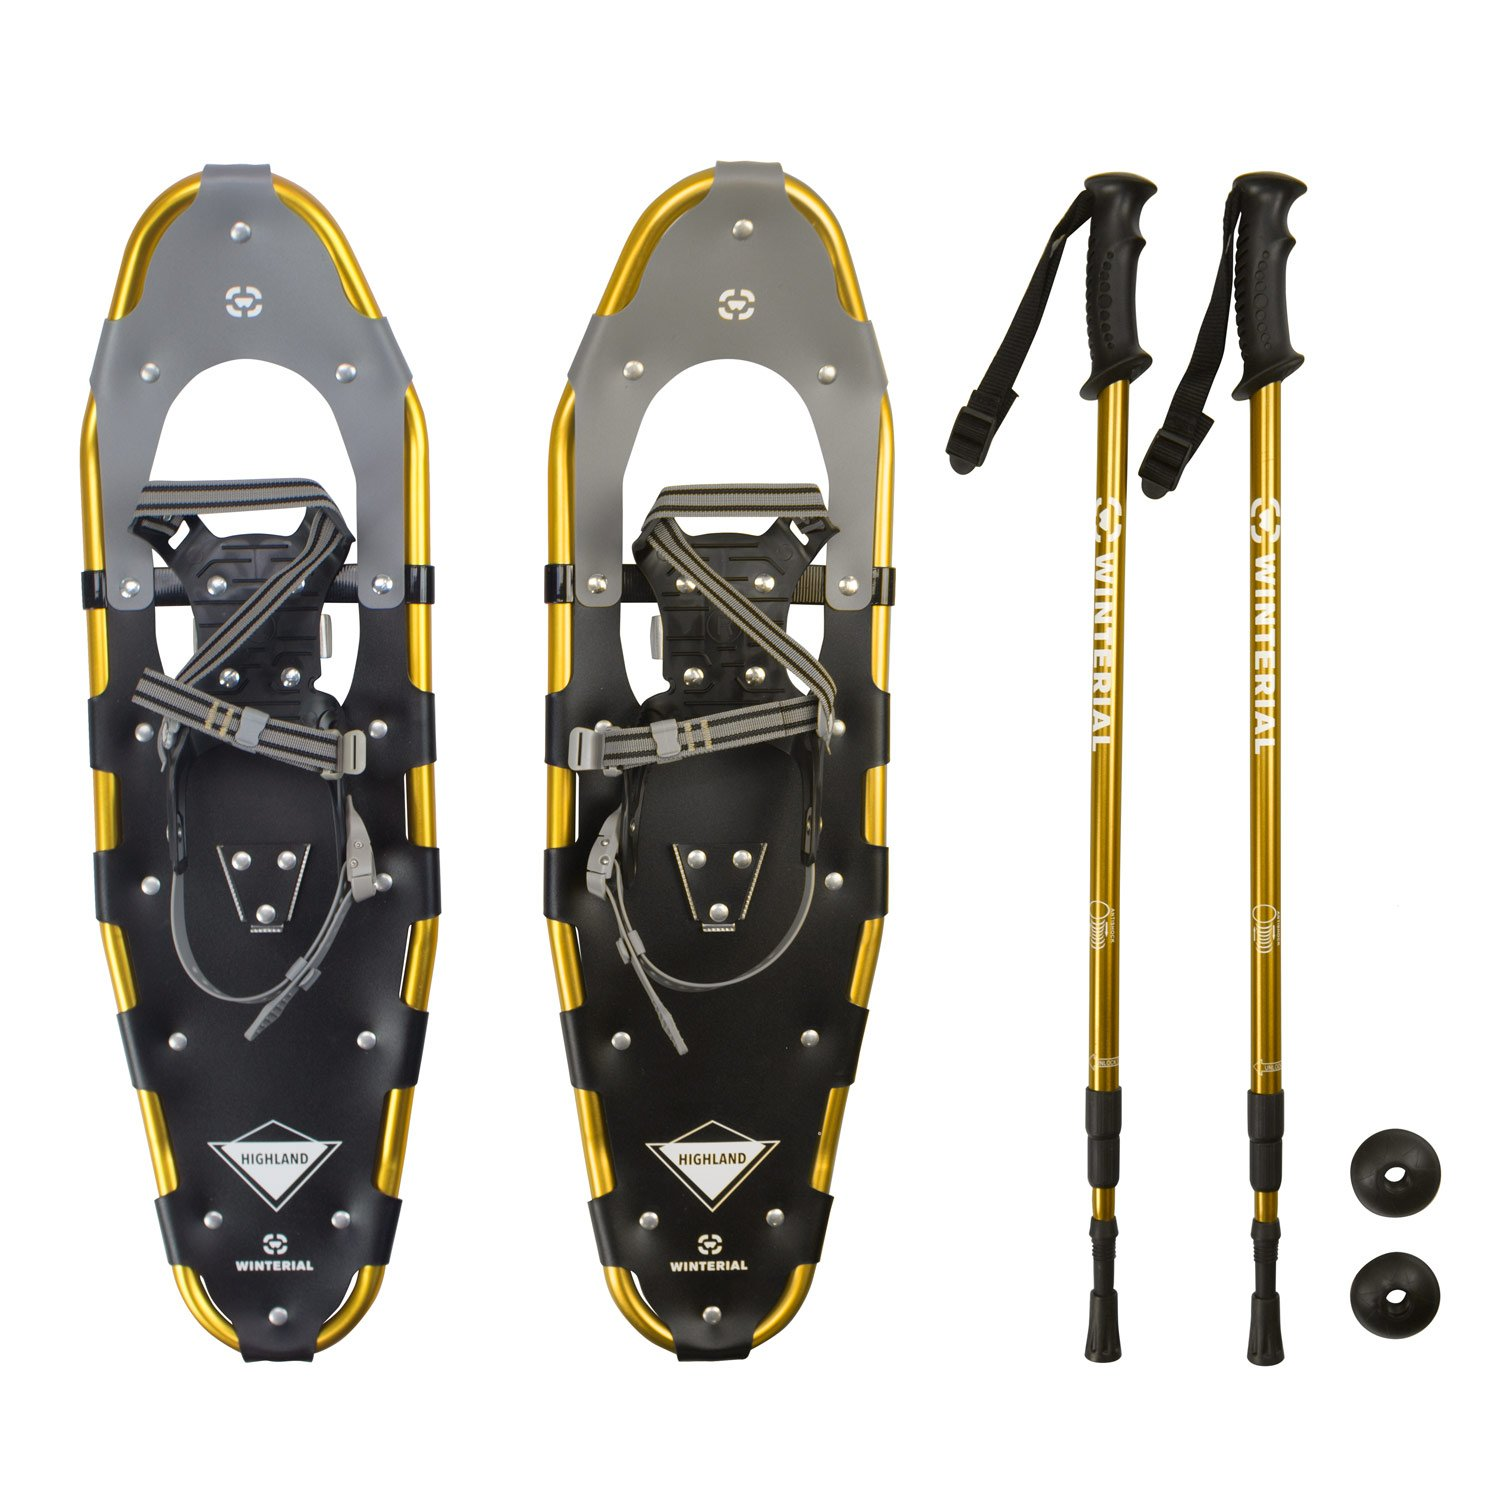 Winterial Highland Snowshoes, Recreational Snow Shoes/Adult/Backcountry/Rolling Terrain Snowshoes/POLES INCLUDED! by Winterial